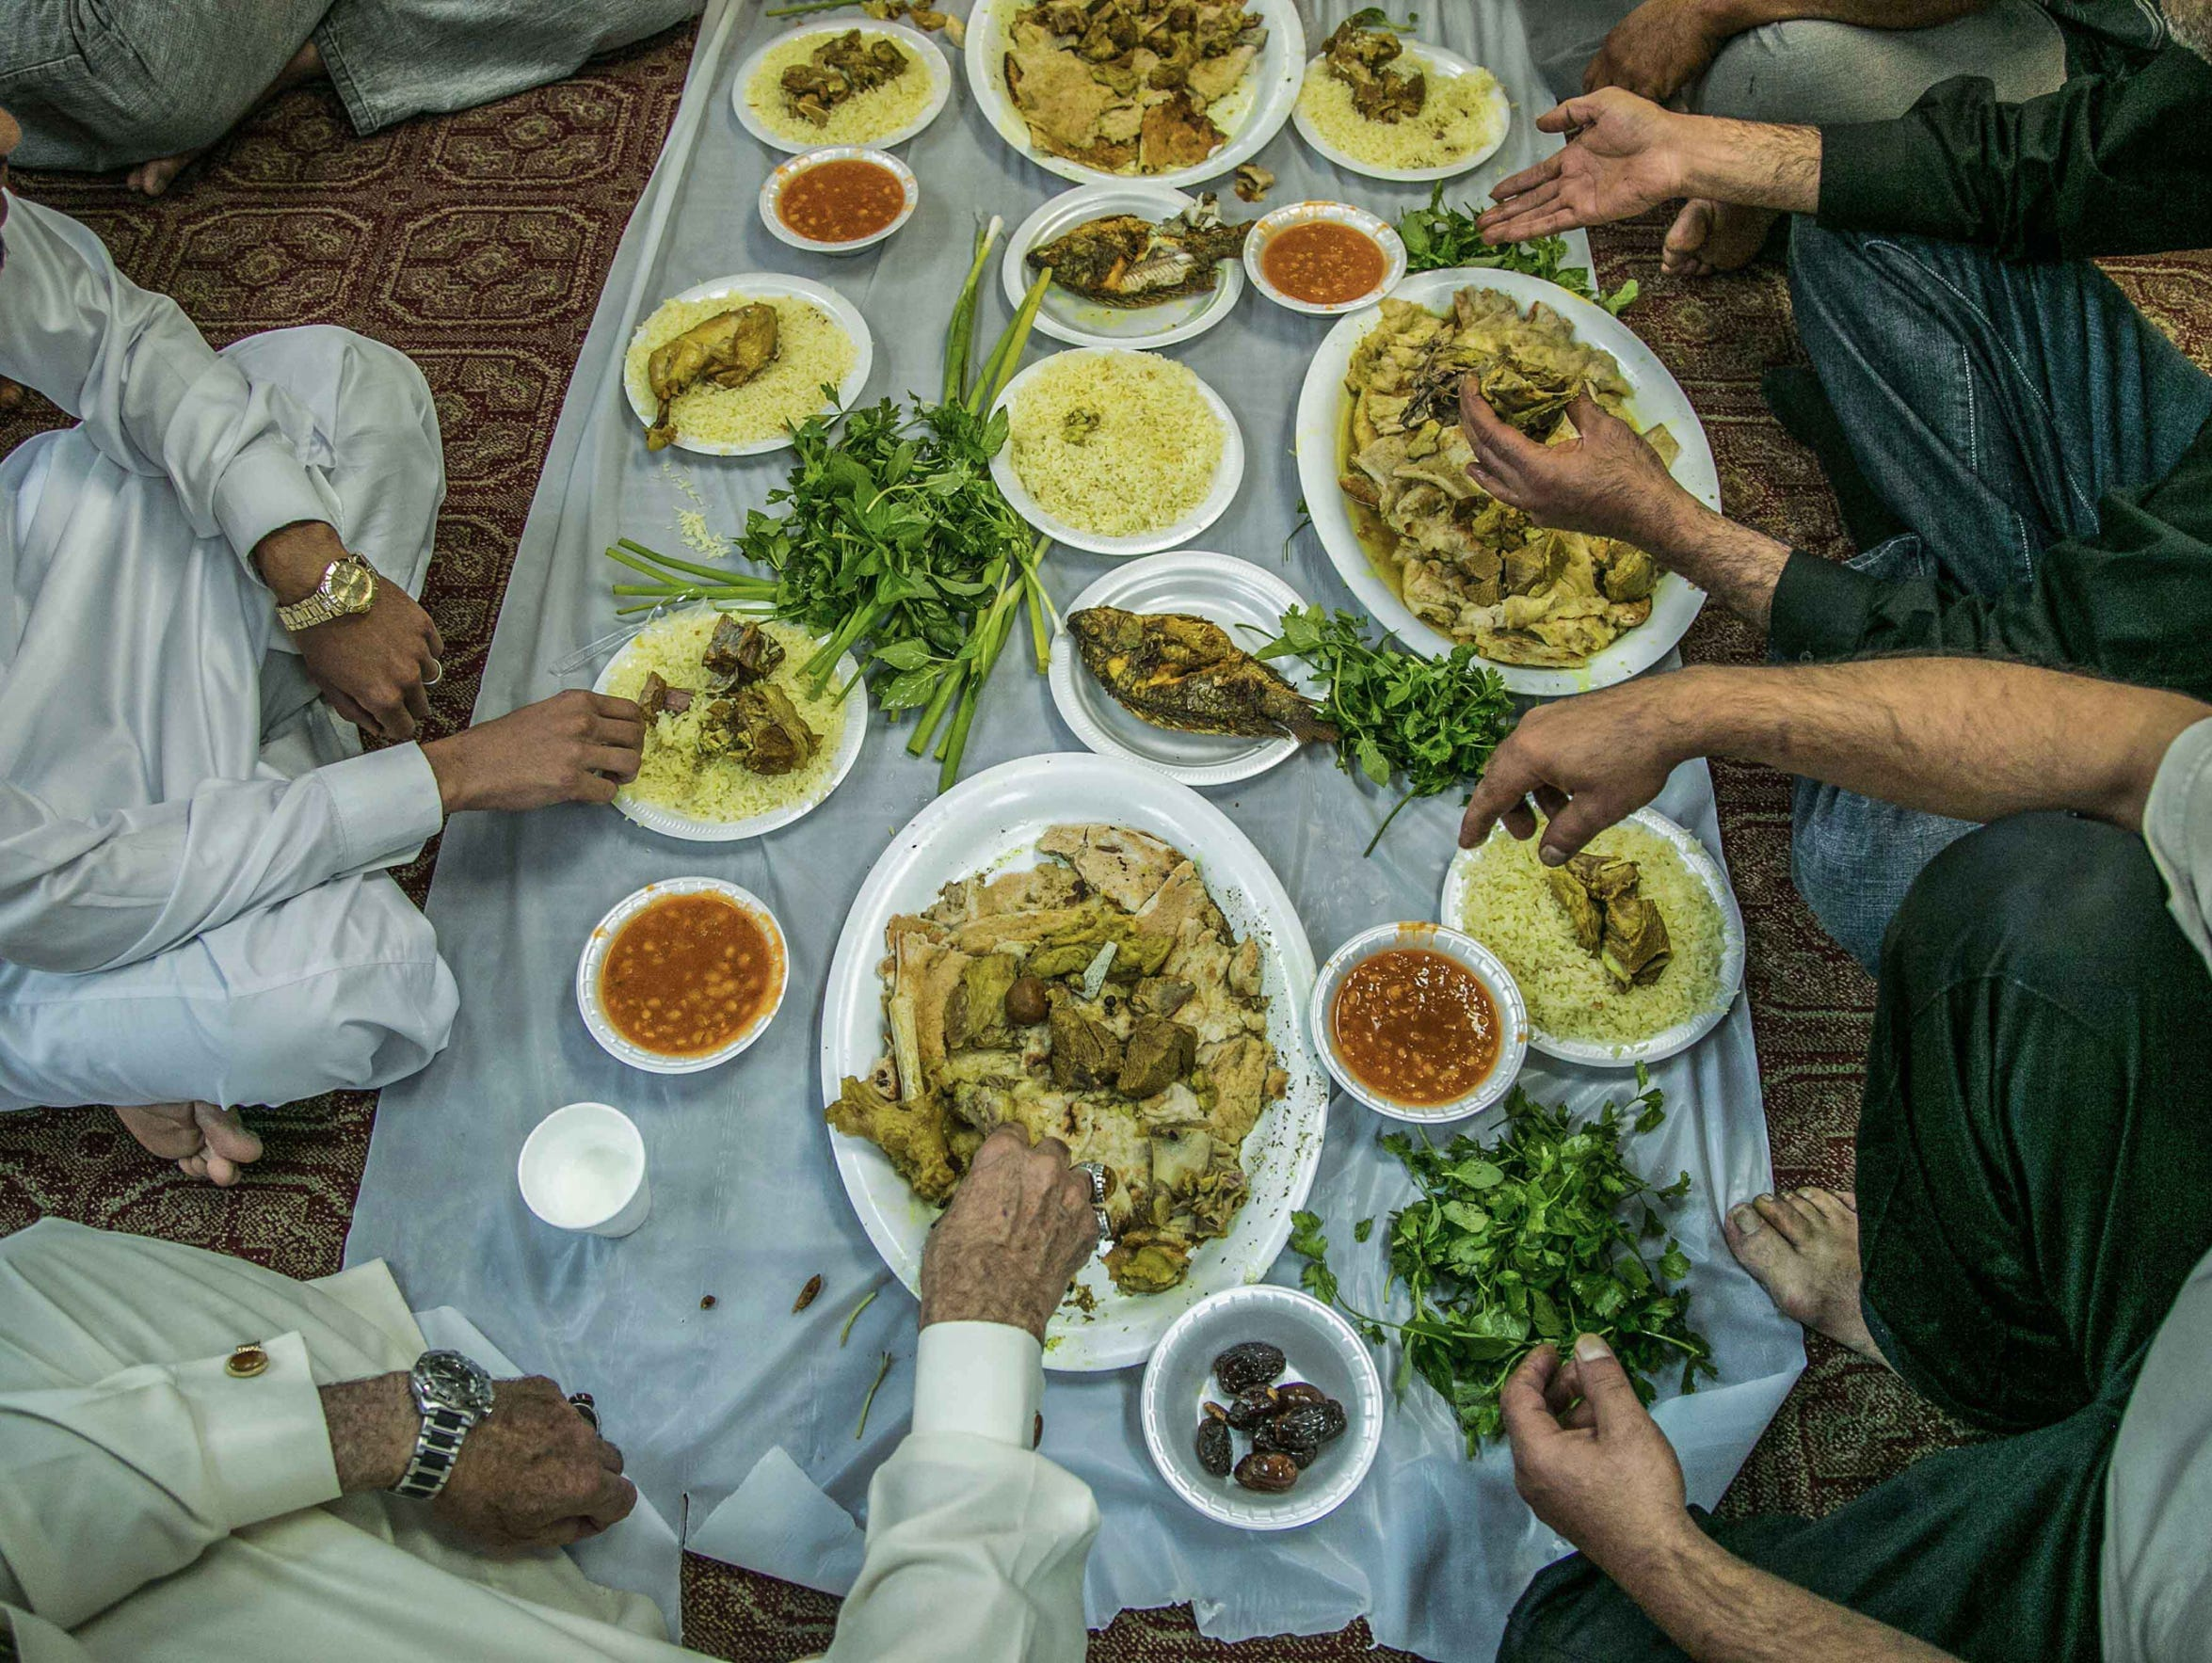 A traditional meal is held at Mokeeb Anssar Alhseen,